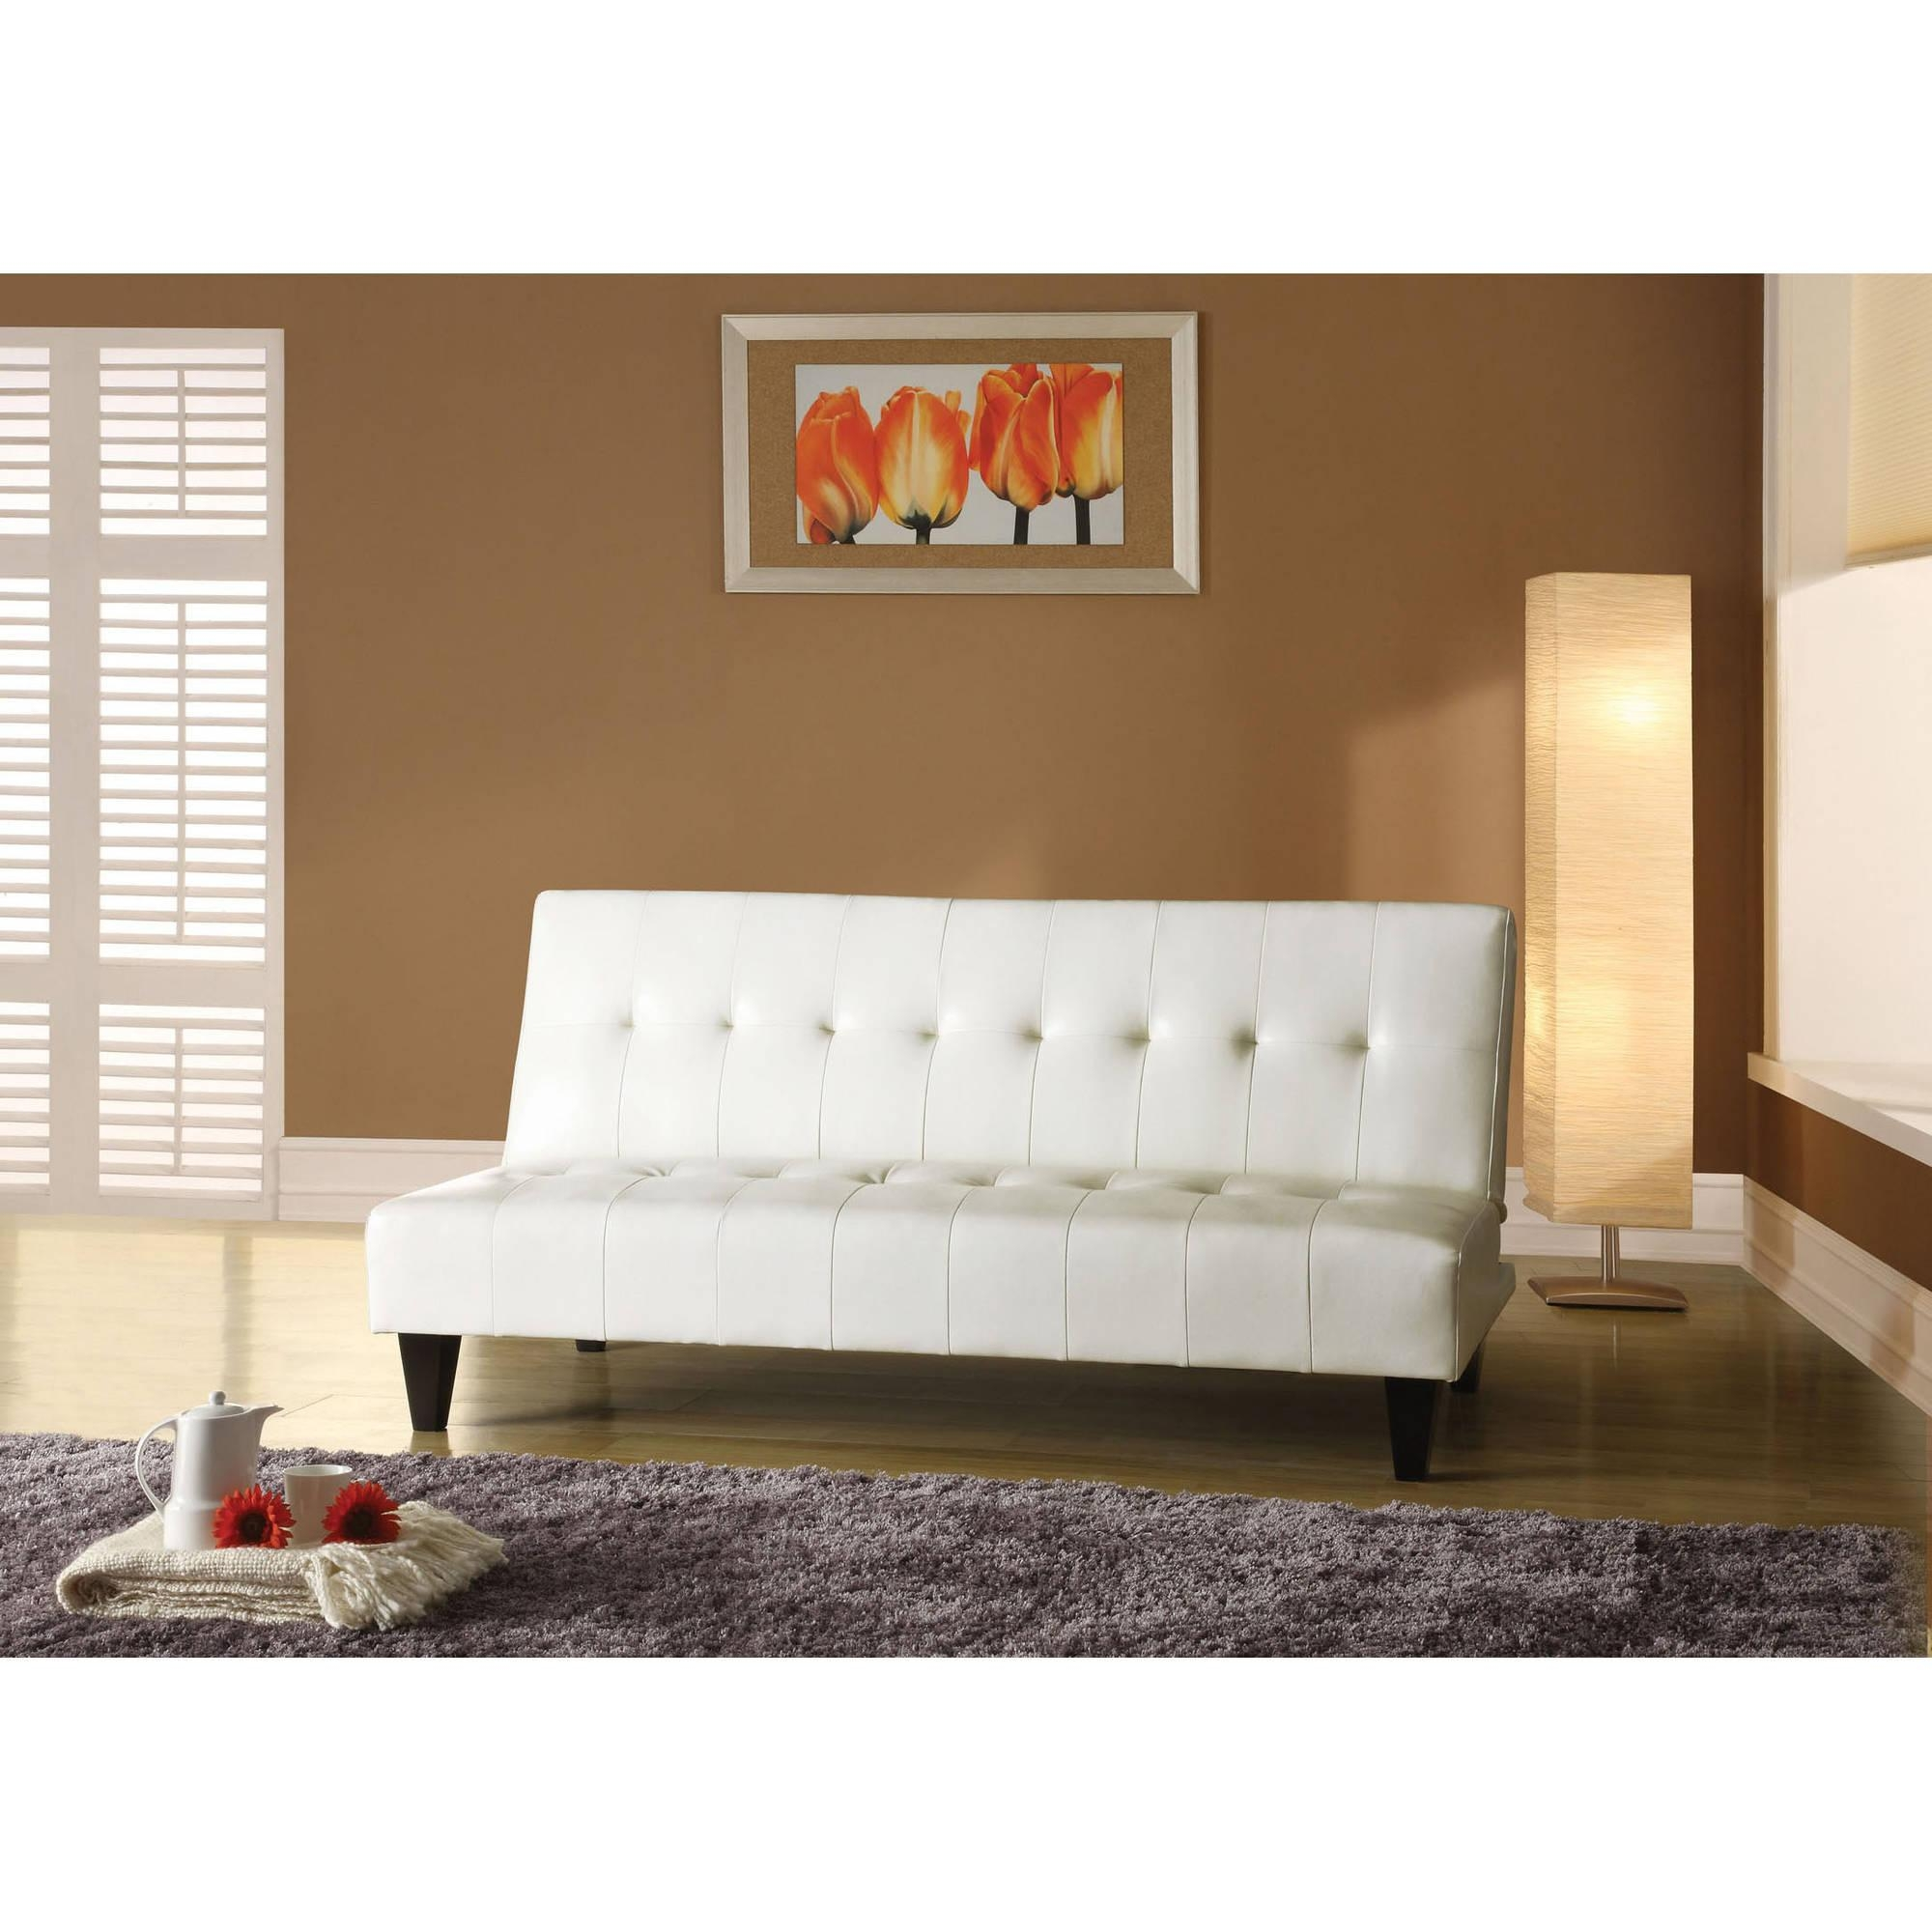 Faux Leather Bycast Adjustable Futon Sofa, Multiple Colors With Regard To Faux Leather Futon Sofas (View 3 of 20)